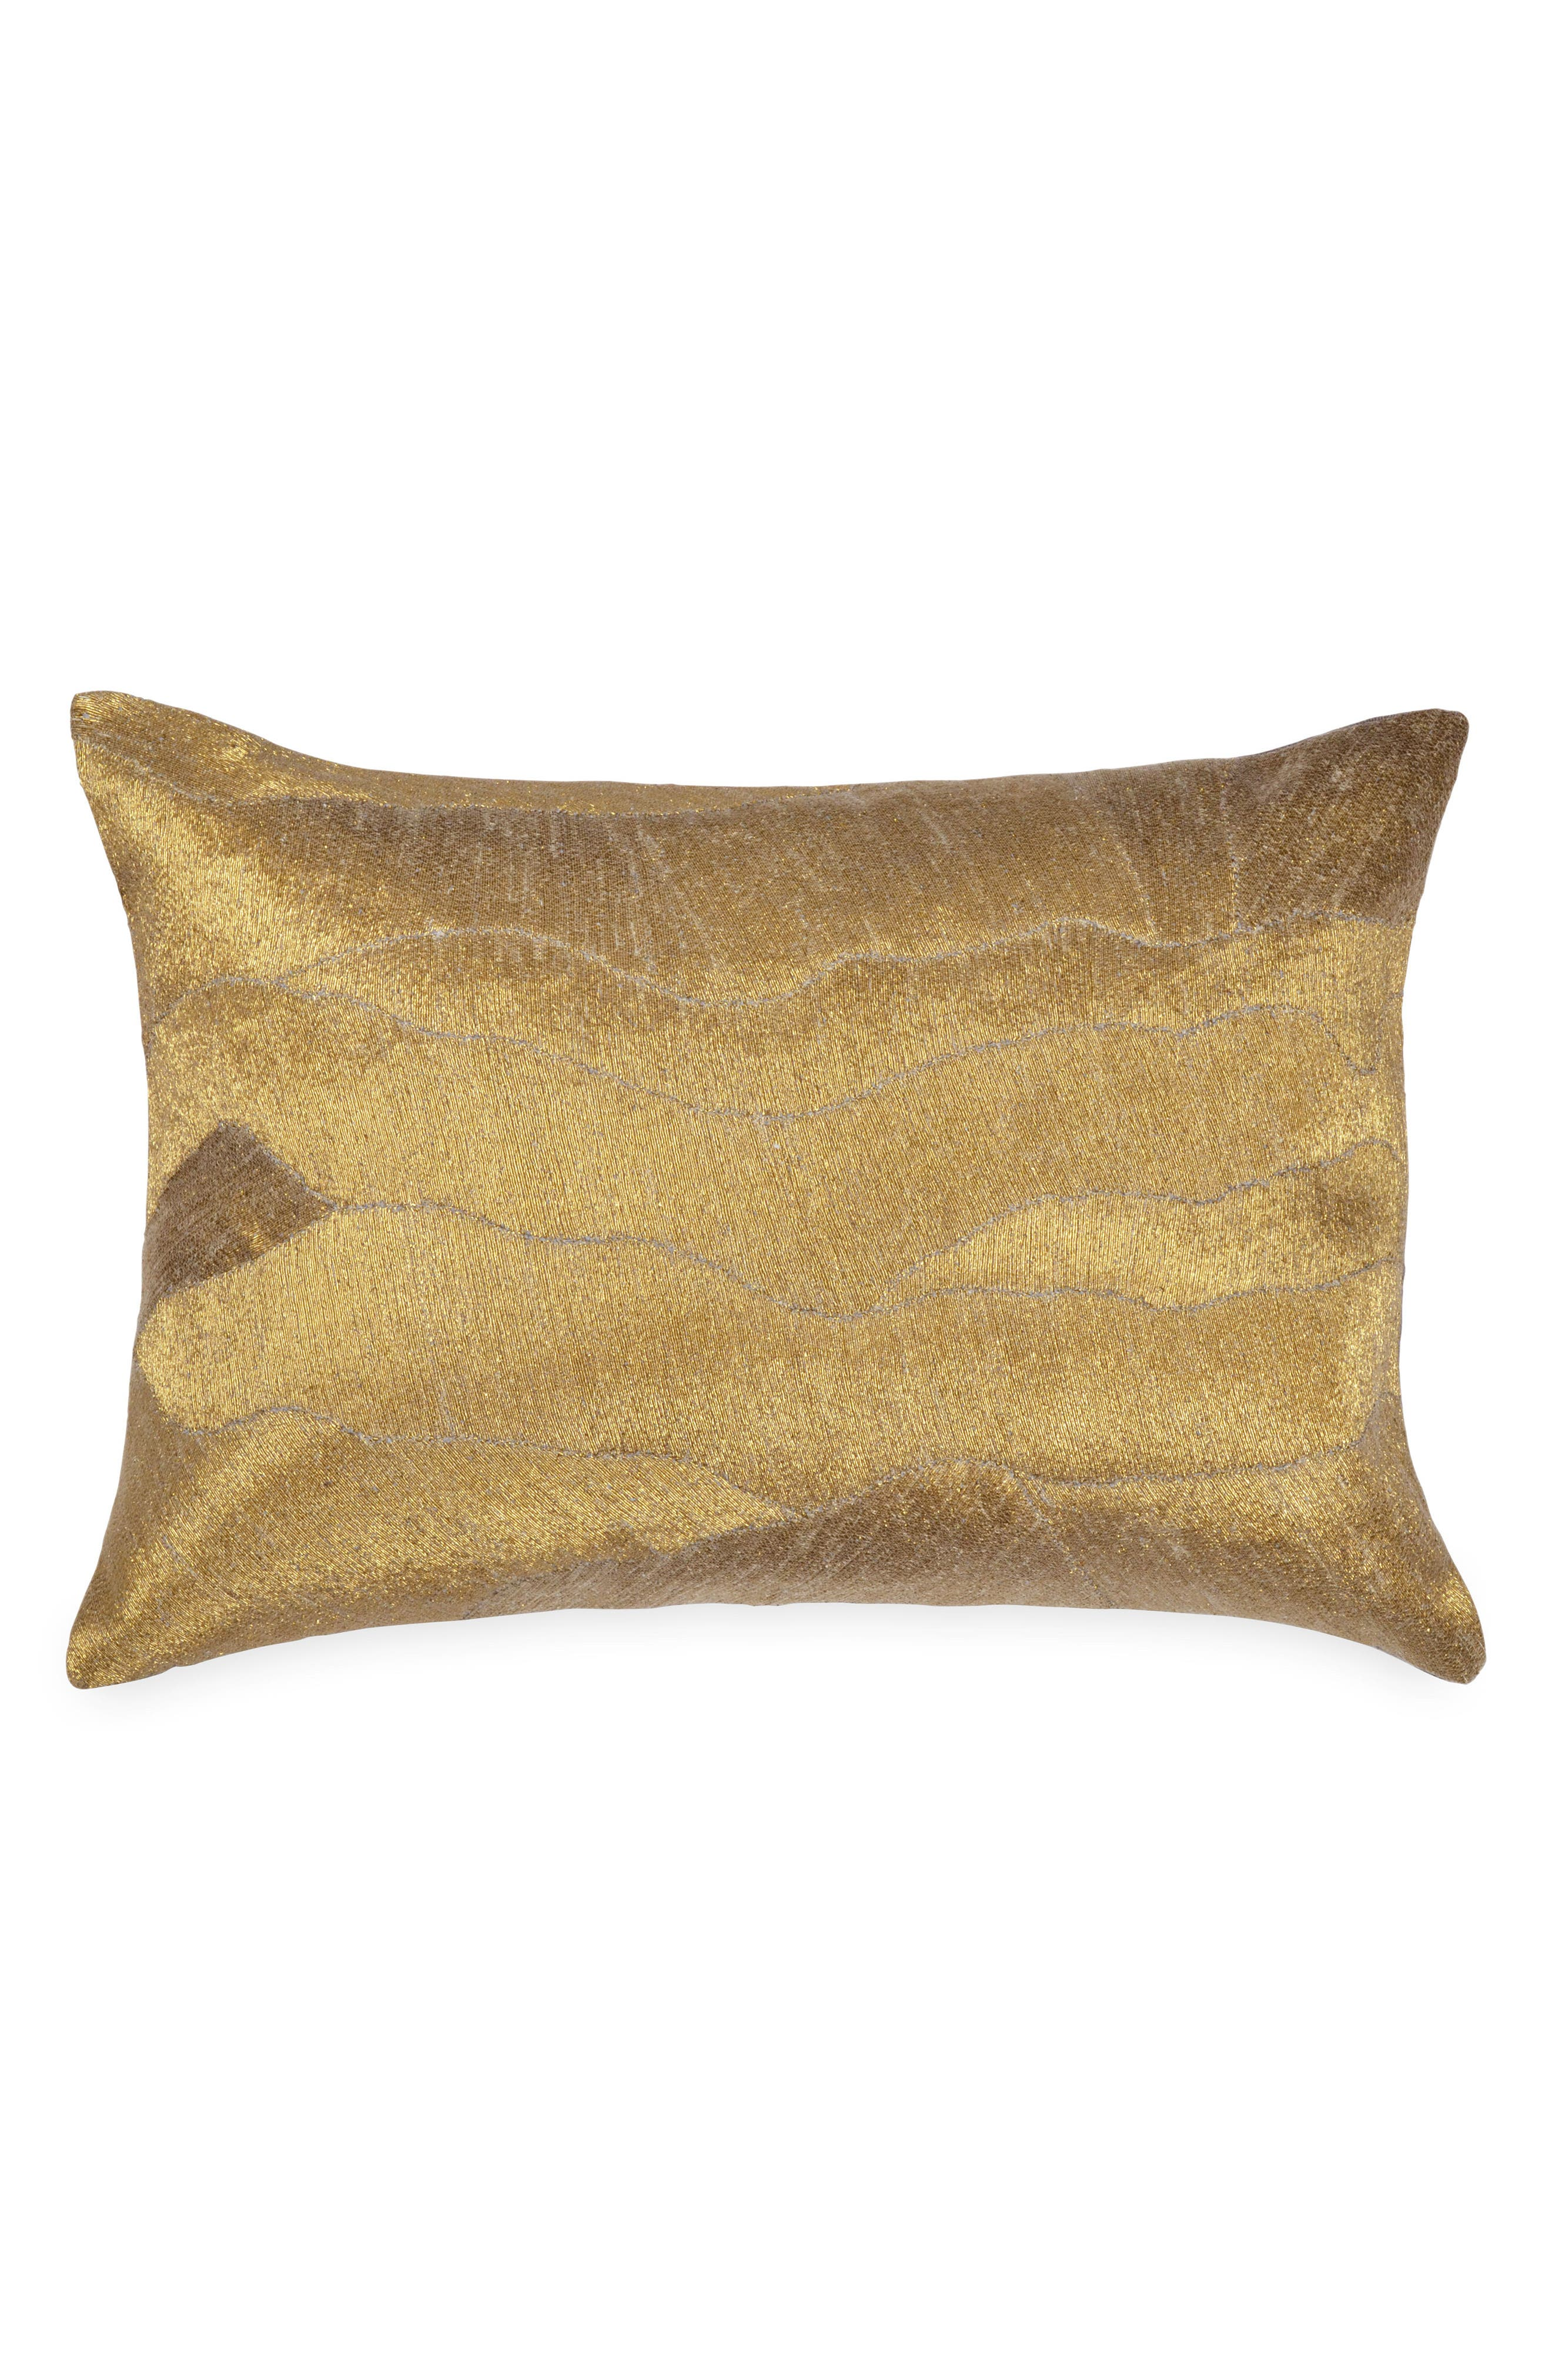 Michael Aram After The Storm Accent Pillow